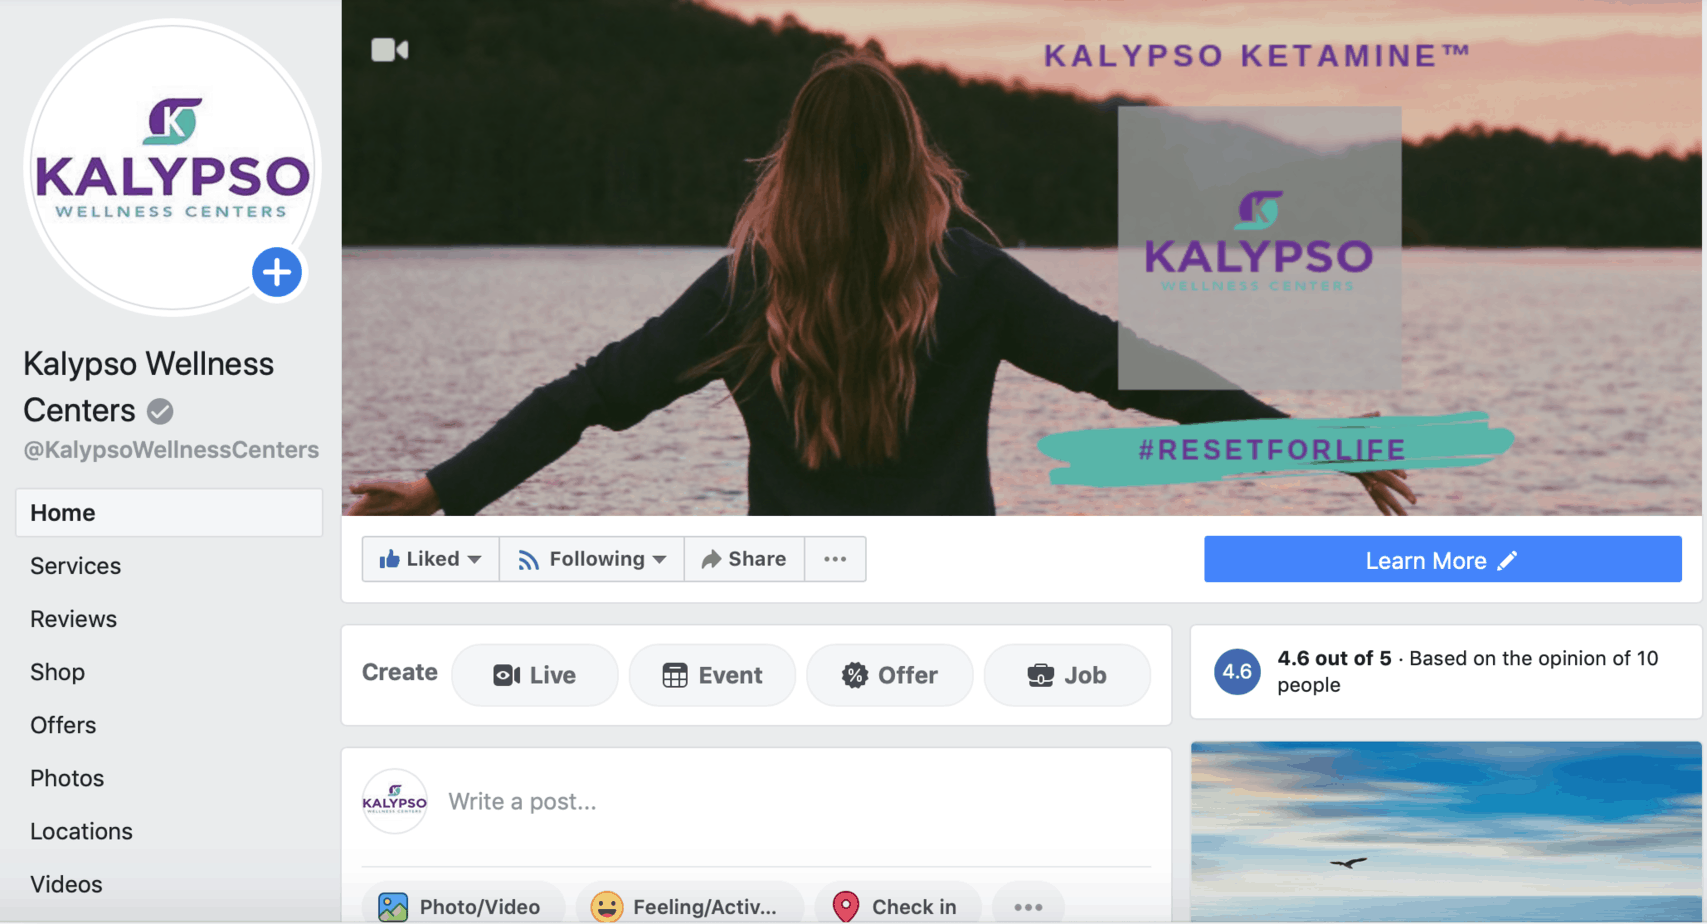 Kalypso Wellness Facebook